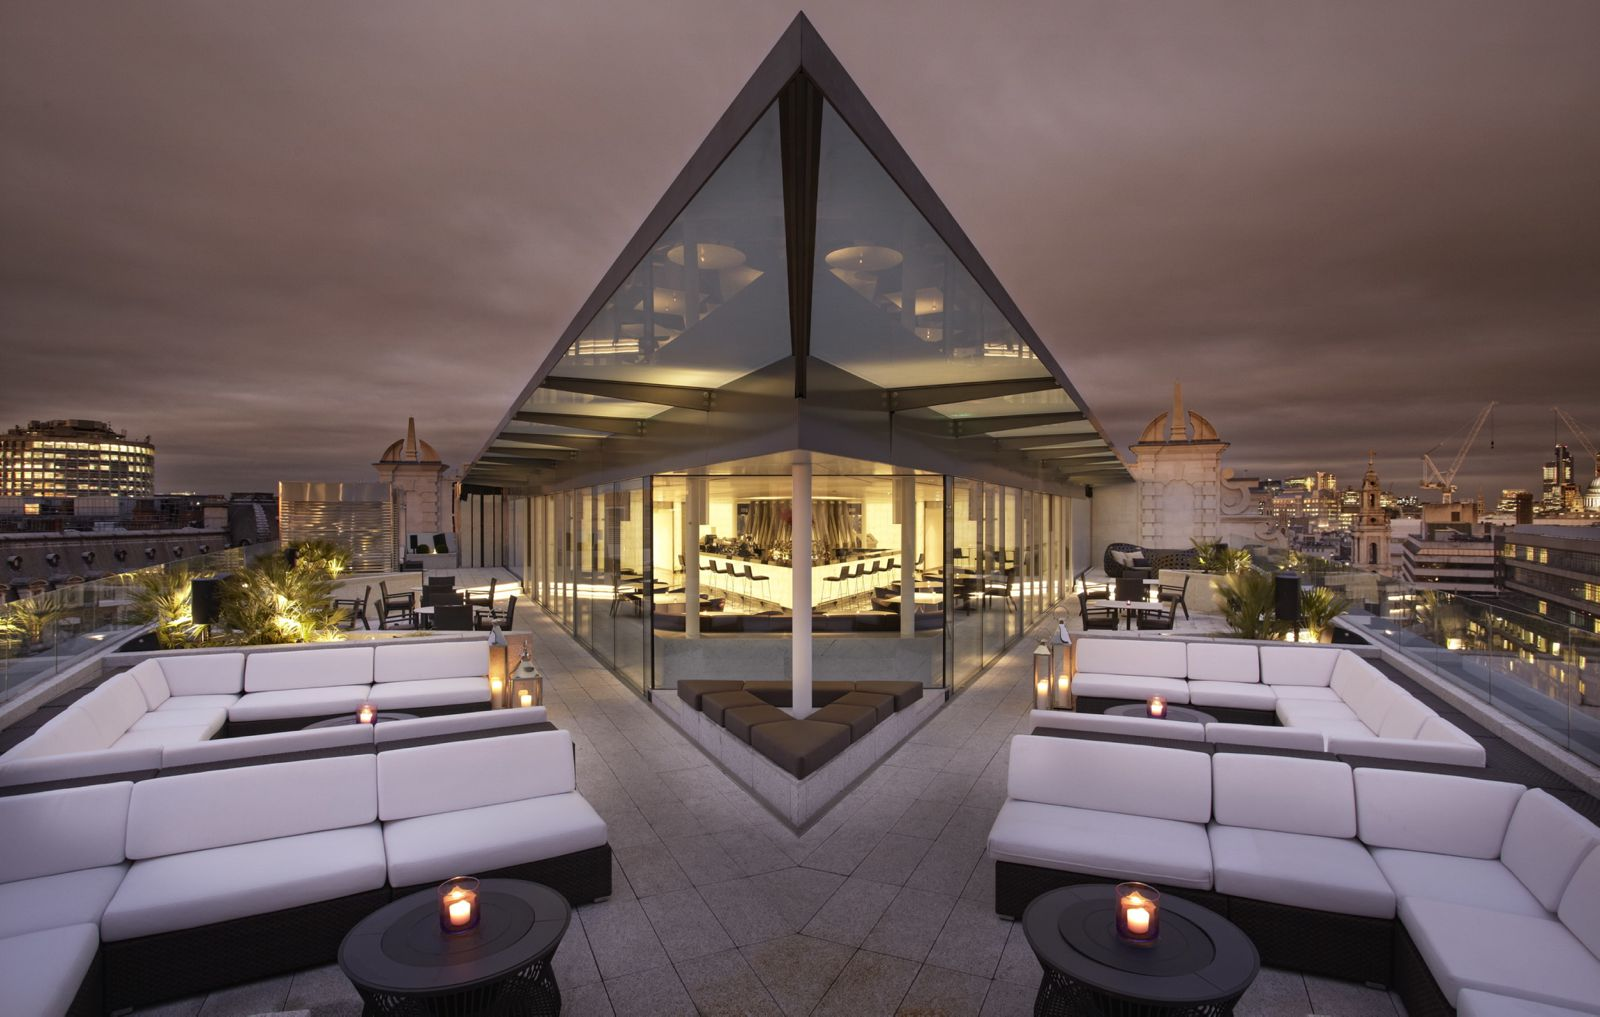 12 Iconic London Bars With Breathtaking Views Across The City (8)